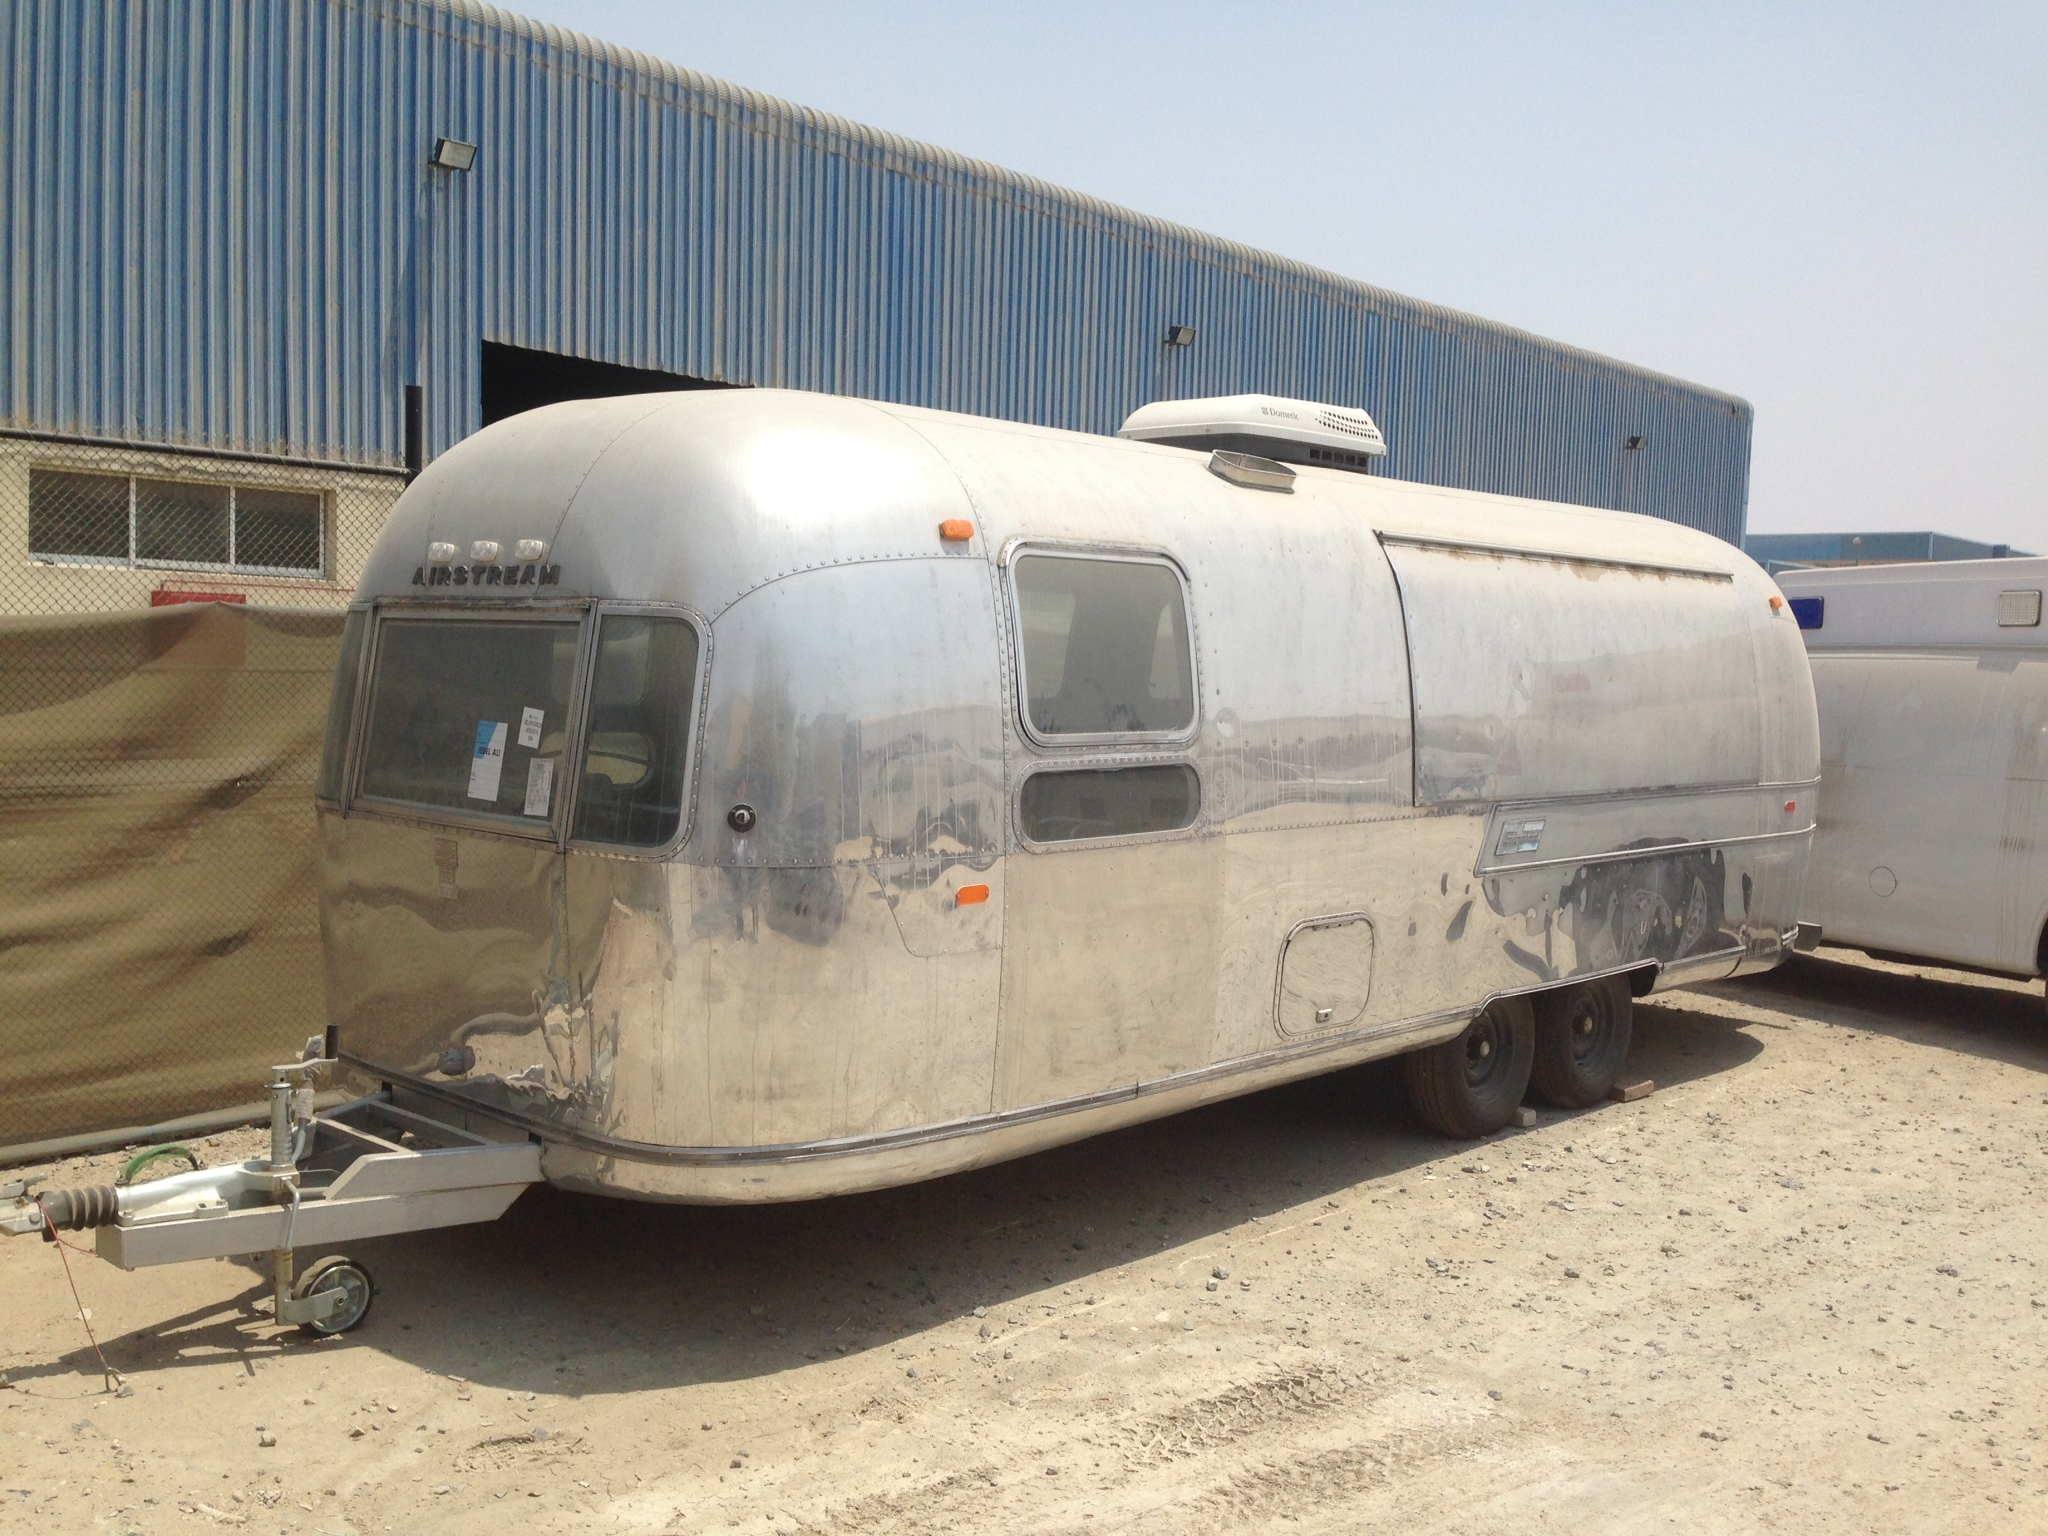 "The Airstream we'll be converting into the Panifico Food Truck! It looks worn down right now but we have big plans for this old dog.                      Normal   0           false   false   false     EN-US   JA   X-NONE                                                                                                                                                                                                                                                                                                                                                                              /* Style Definitions */ table.MsoNormalTable 	{mso-style-name:""Table Normal""; 	mso-tstyle-rowband-size:0; 	mso-tstyle-colband-size:0; 	mso-style-noshow:yes; 	mso-style-priority:99; 	mso-style-parent:""""; 	mso-padding-alt:0cm 5.4pt 0cm 5.4pt; 	mso-para-margin:0cm; 	mso-para-margin-bottom:.0001pt; 	mso-pagination:widow-orphan; 	font-size:12.0pt; 	font-family:Cambria; 	mso-ascii-font-family:Cambria; 	mso-ascii-theme-font:minor-latin; 	mso-hansi-font-family:Cambria; 	mso-hansi-theme-font:minor-latin;}"